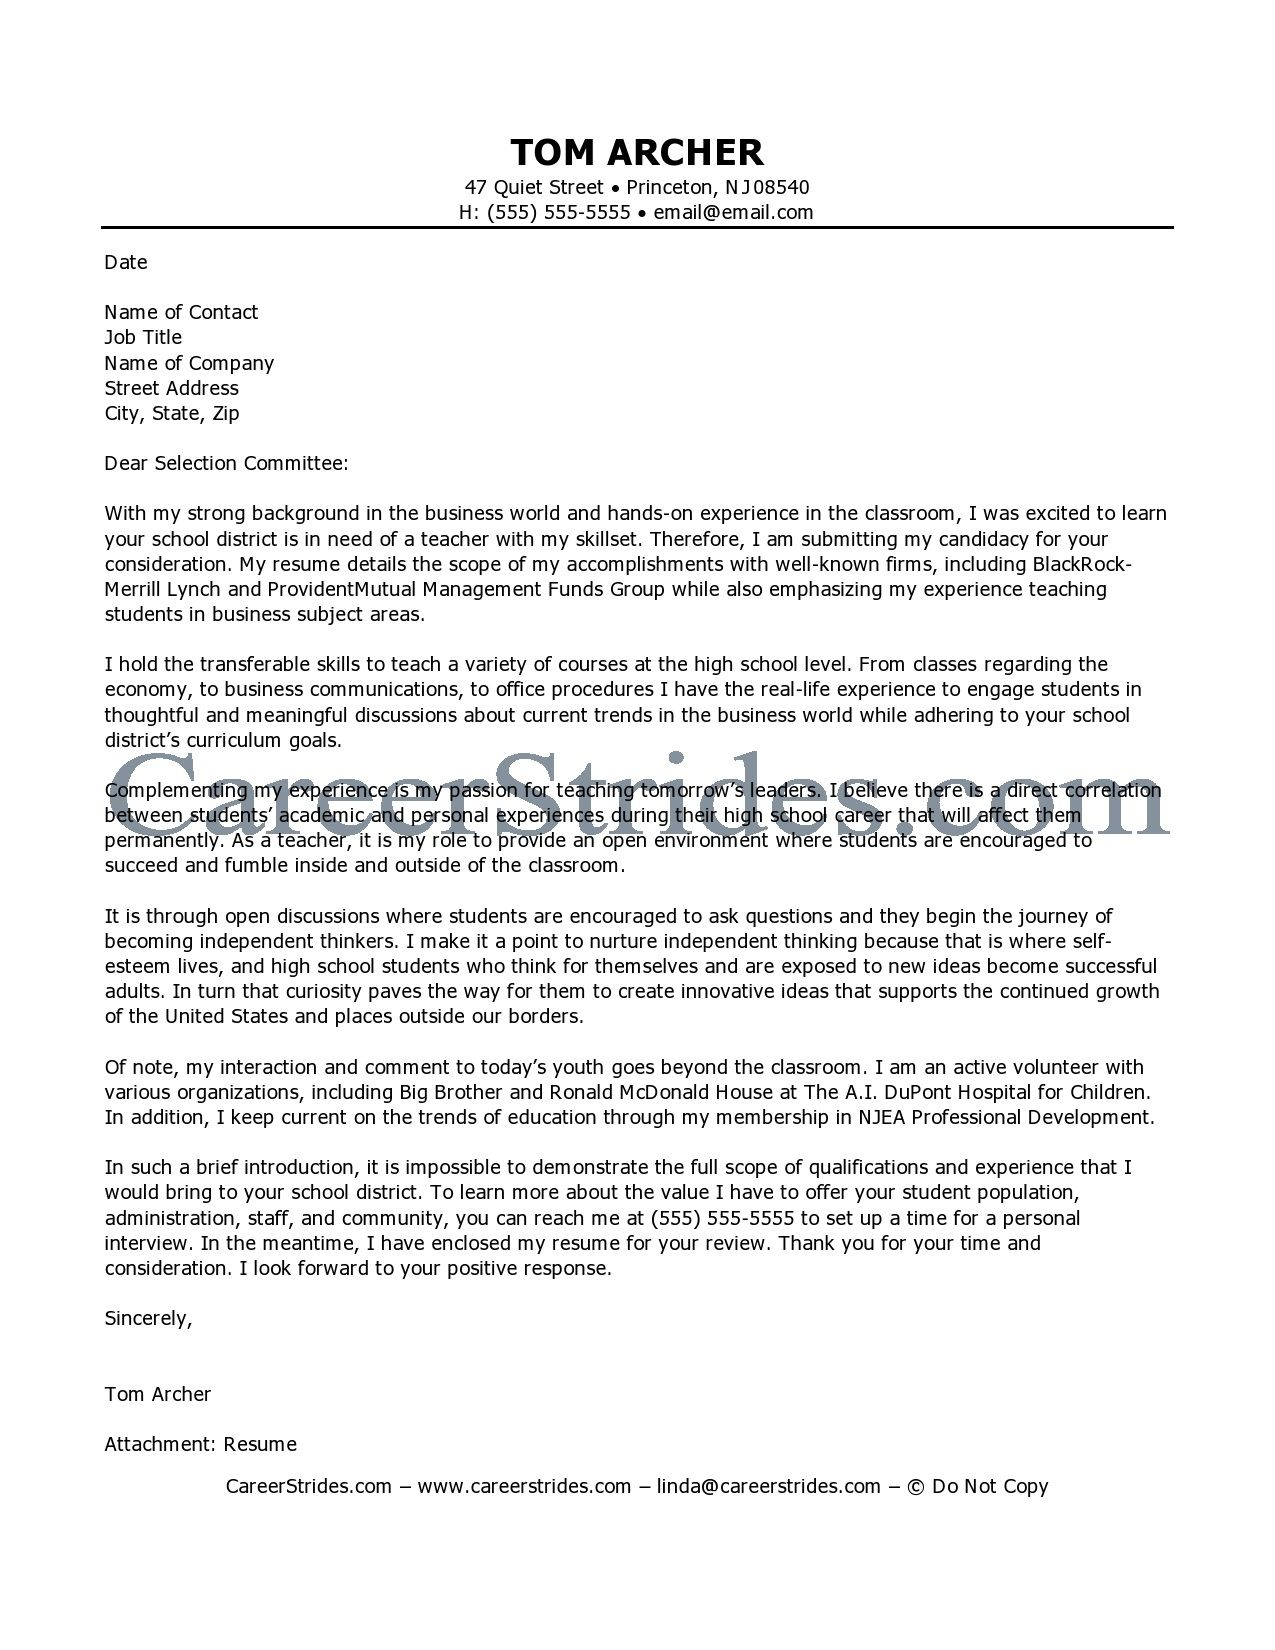 letter of intent to teach again teaching cover letters careerstrides combusiness 24779 | 409799956b3820d8b0586e069490e768